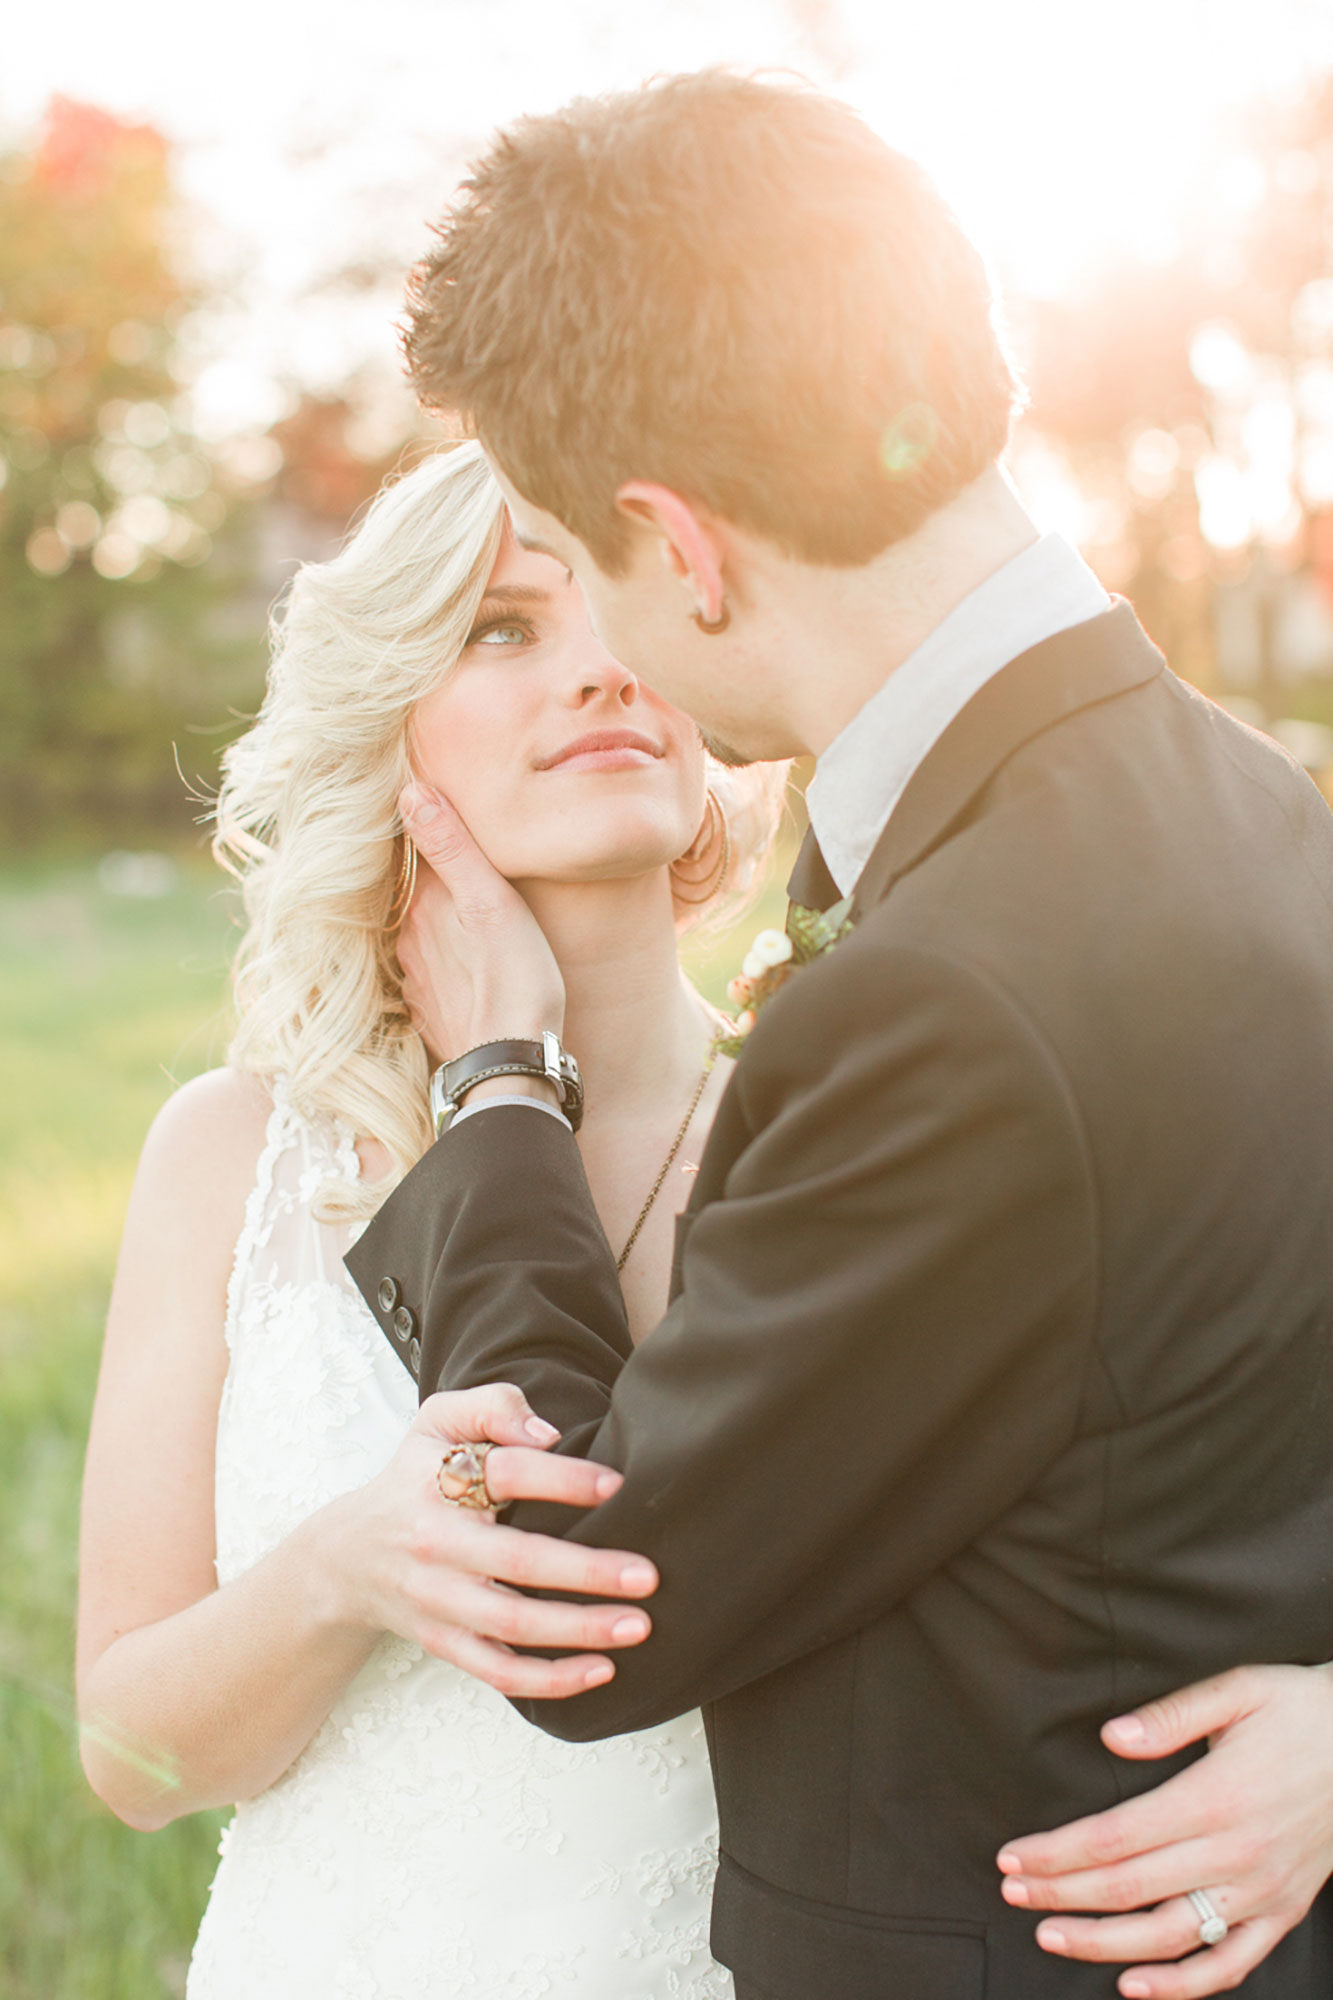 Scotsdale-Farm-Editorial-Vineyard-Bride-Photo-By-Carolyn-Bentum-Photography-037.jpg